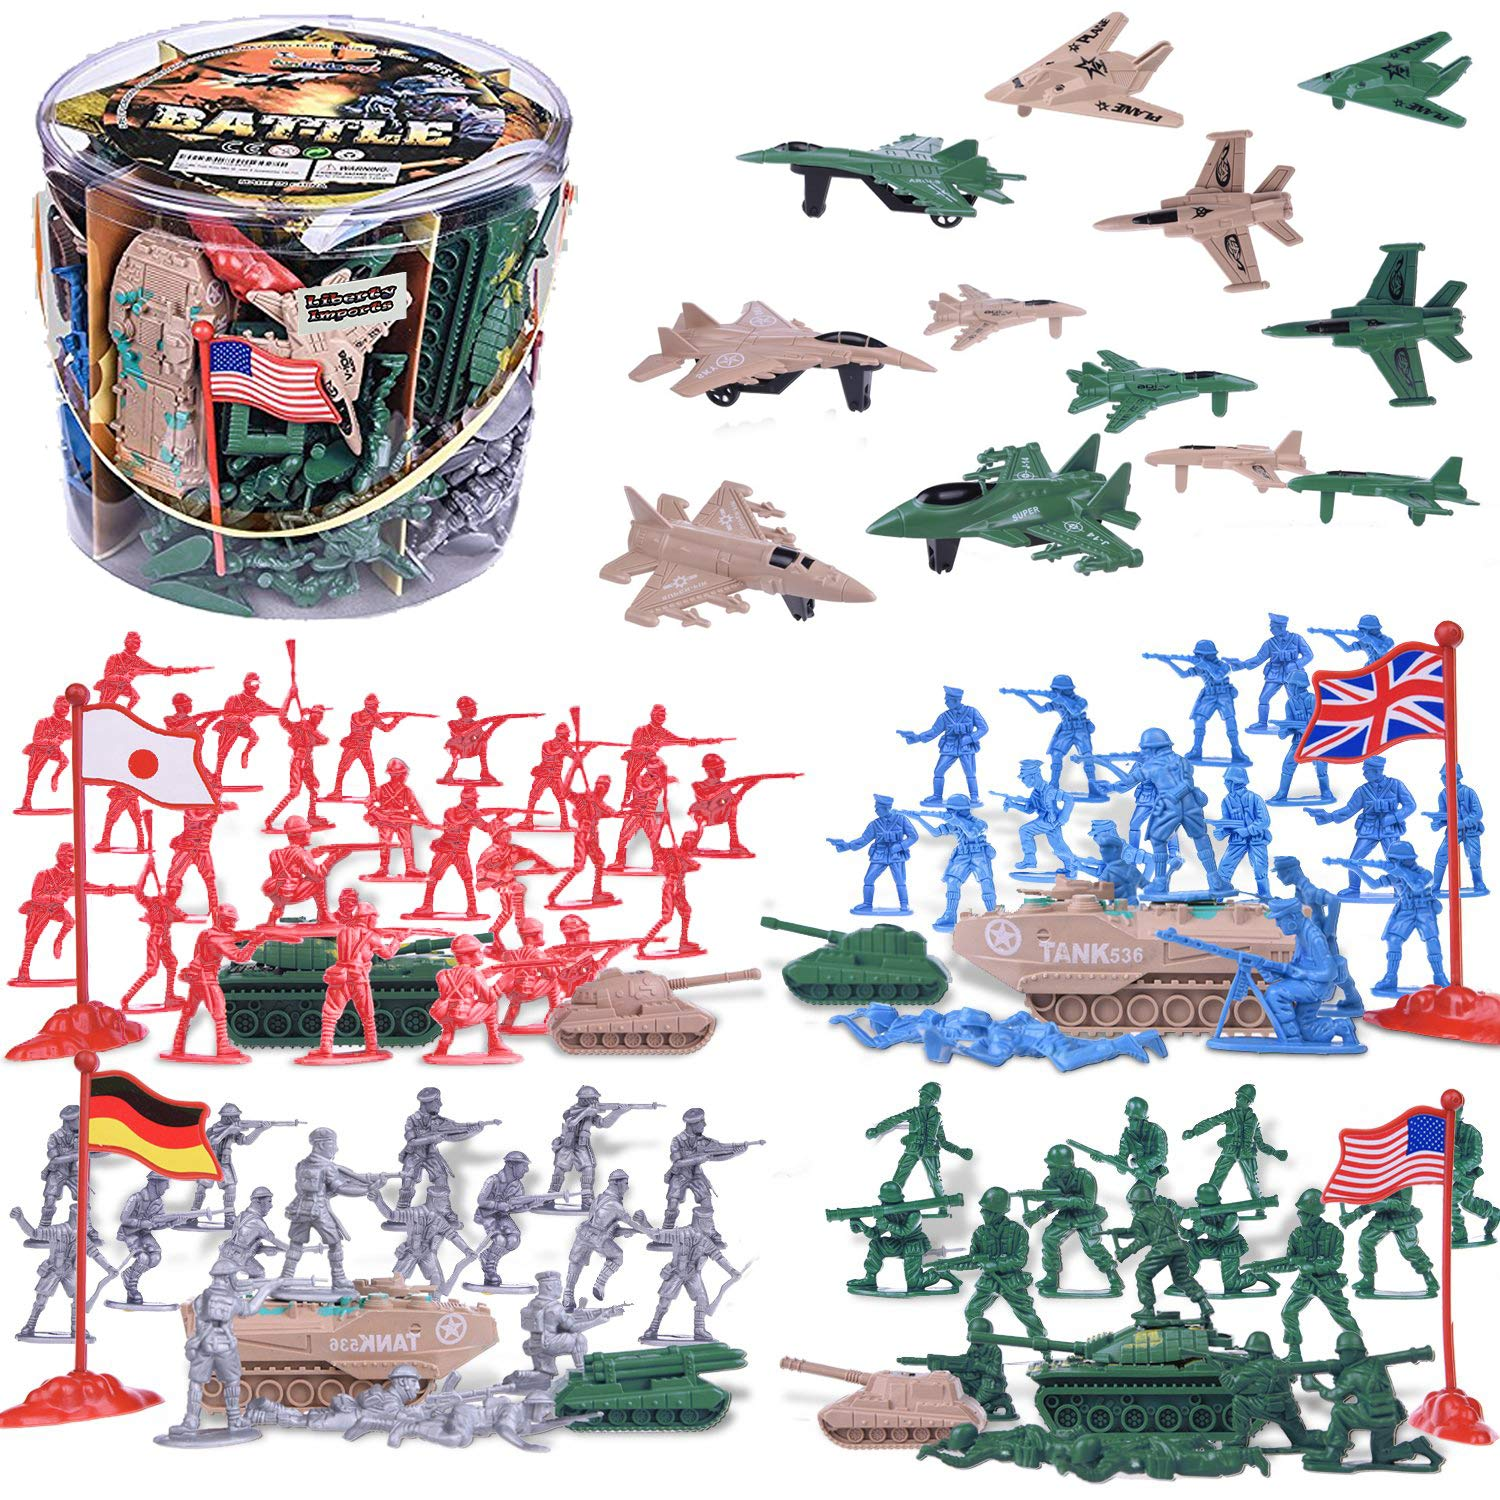 Allied powers soldiers clipart banner free library Liberty Imports Army Men Military Action Figures Bucket Playset -  124-Pieces World War II Toy Soldiers Combat Special Forces (Soldiers and  Vehicles) banner free library